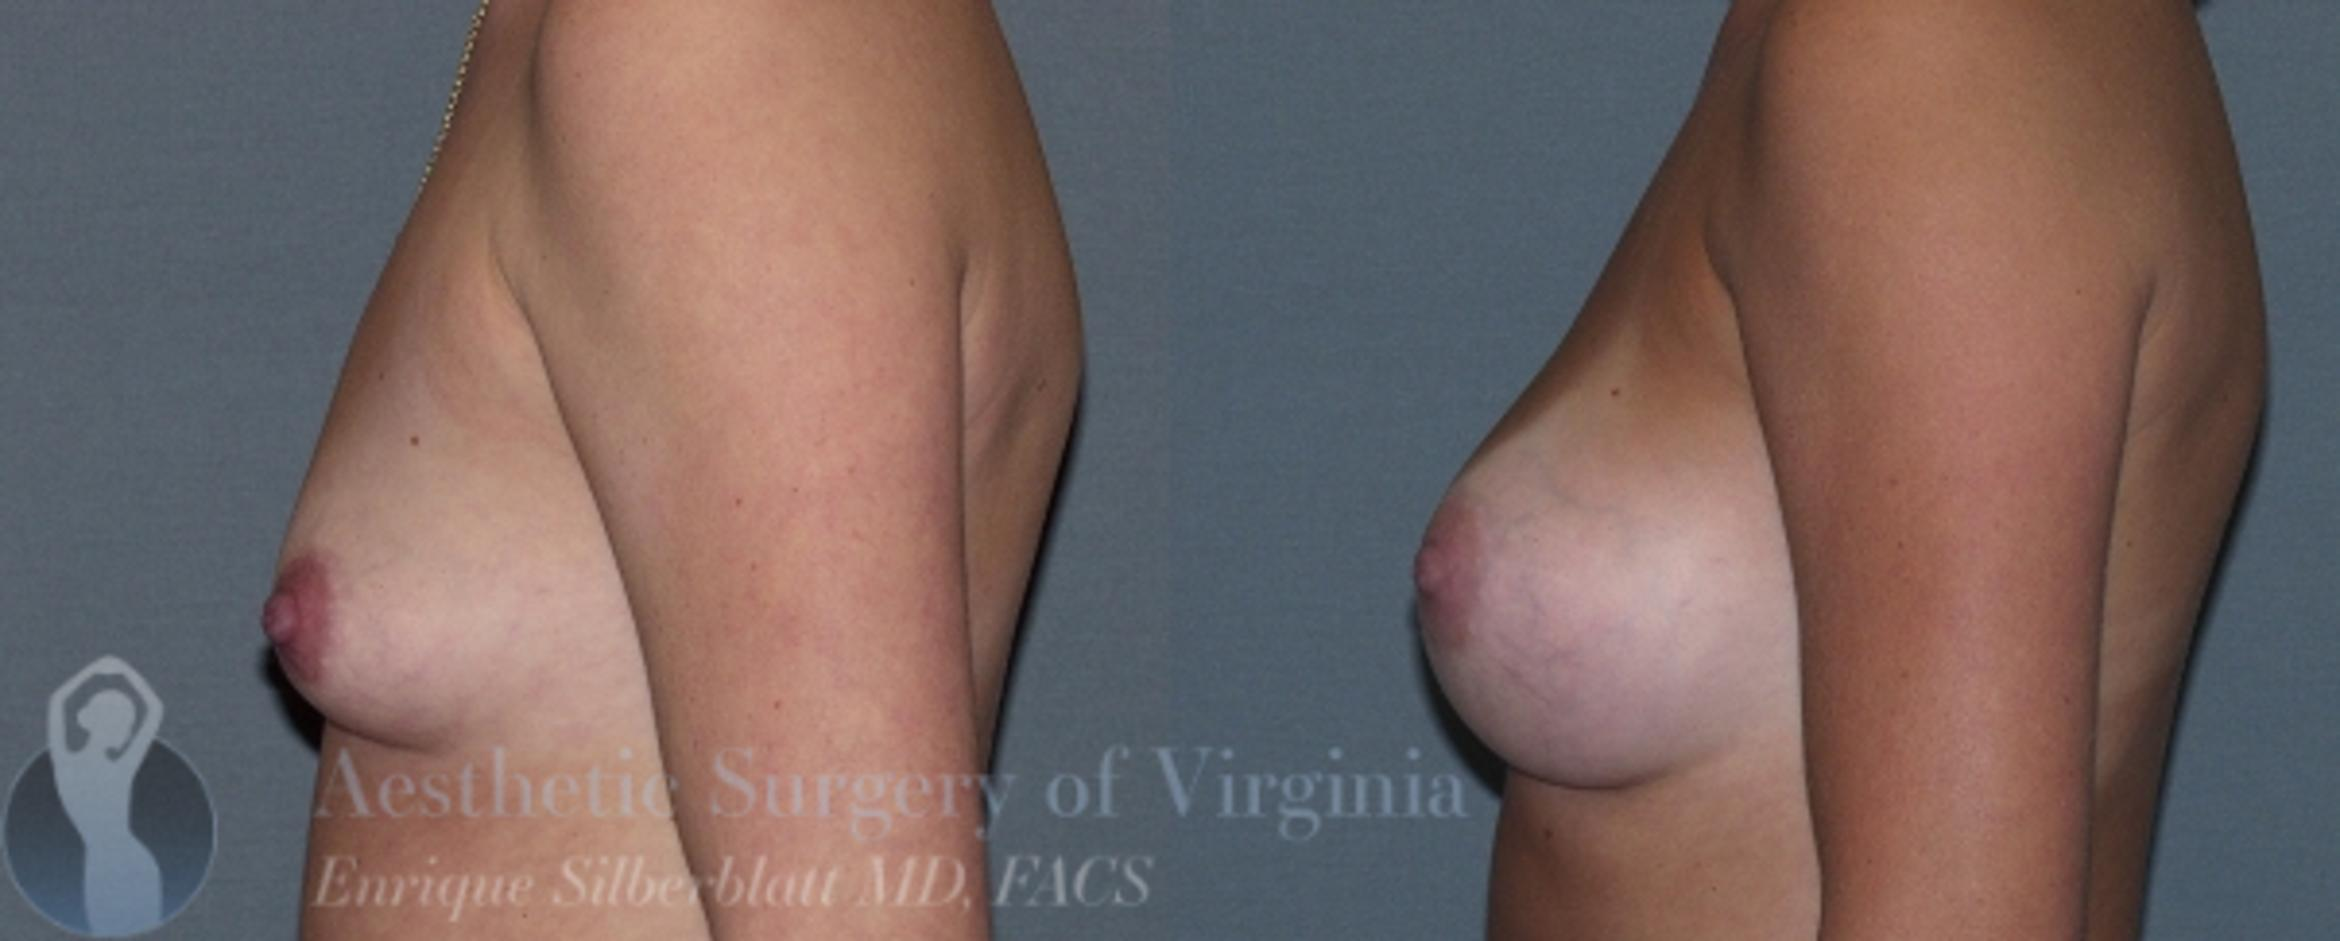 Breast Augmentation Case 6 Before & After View #3 | Roanoke, VA | Aesthetic Surgery of Virginia: Enrique Silberblatt, MD